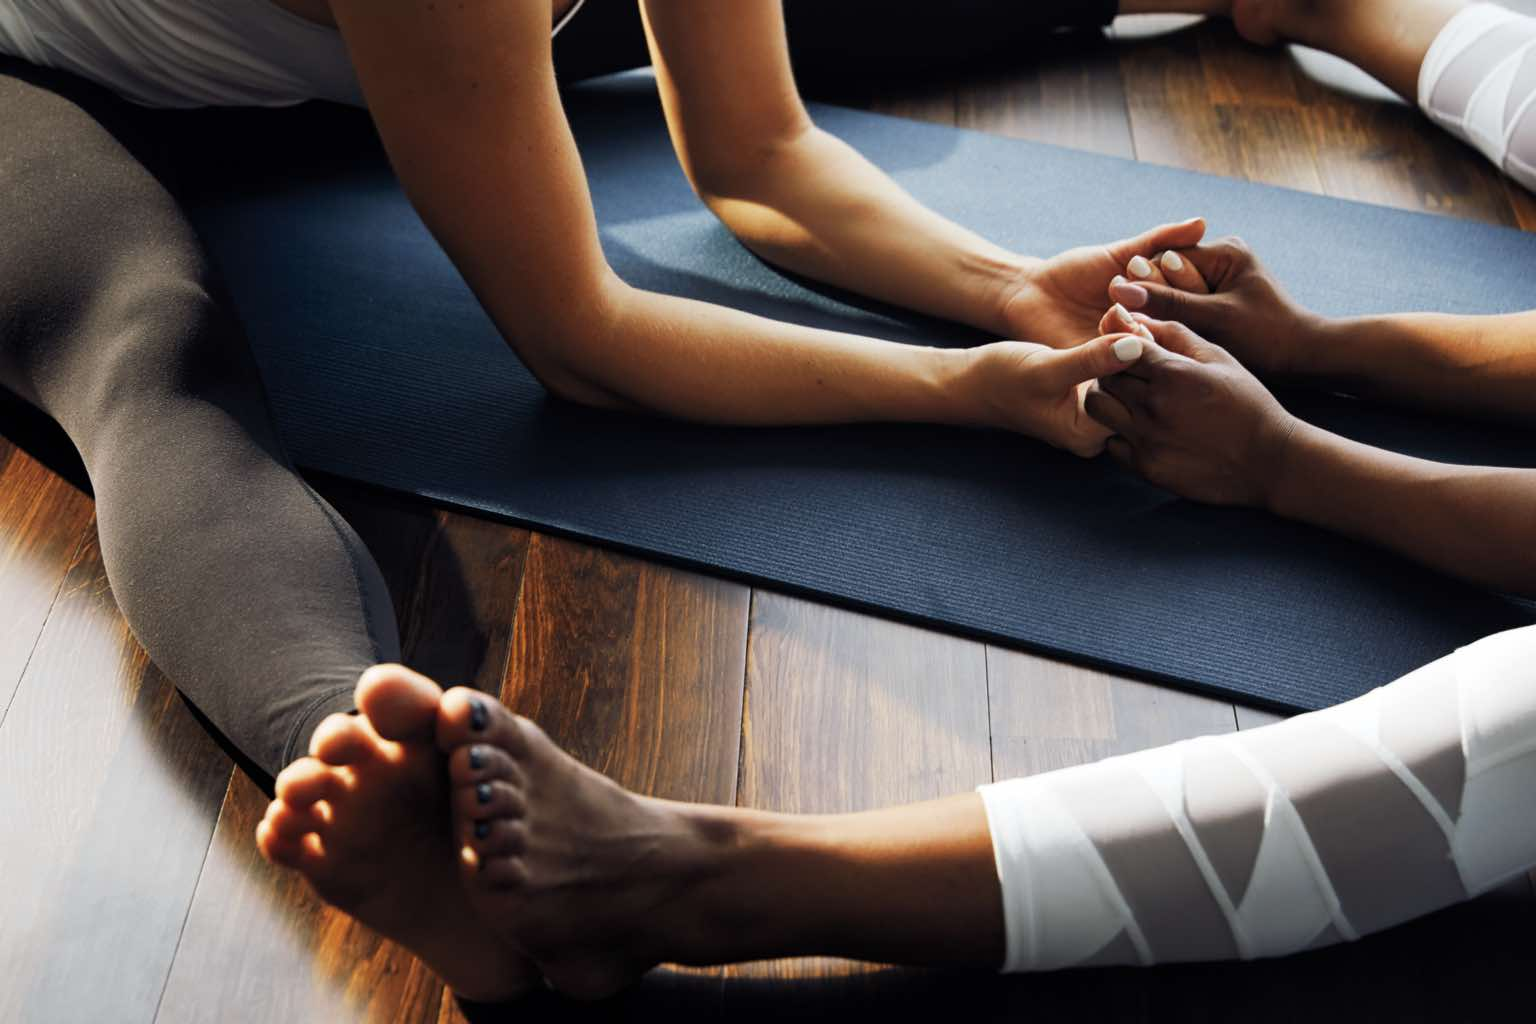 Two women holding hands and stretching on a yoga mat